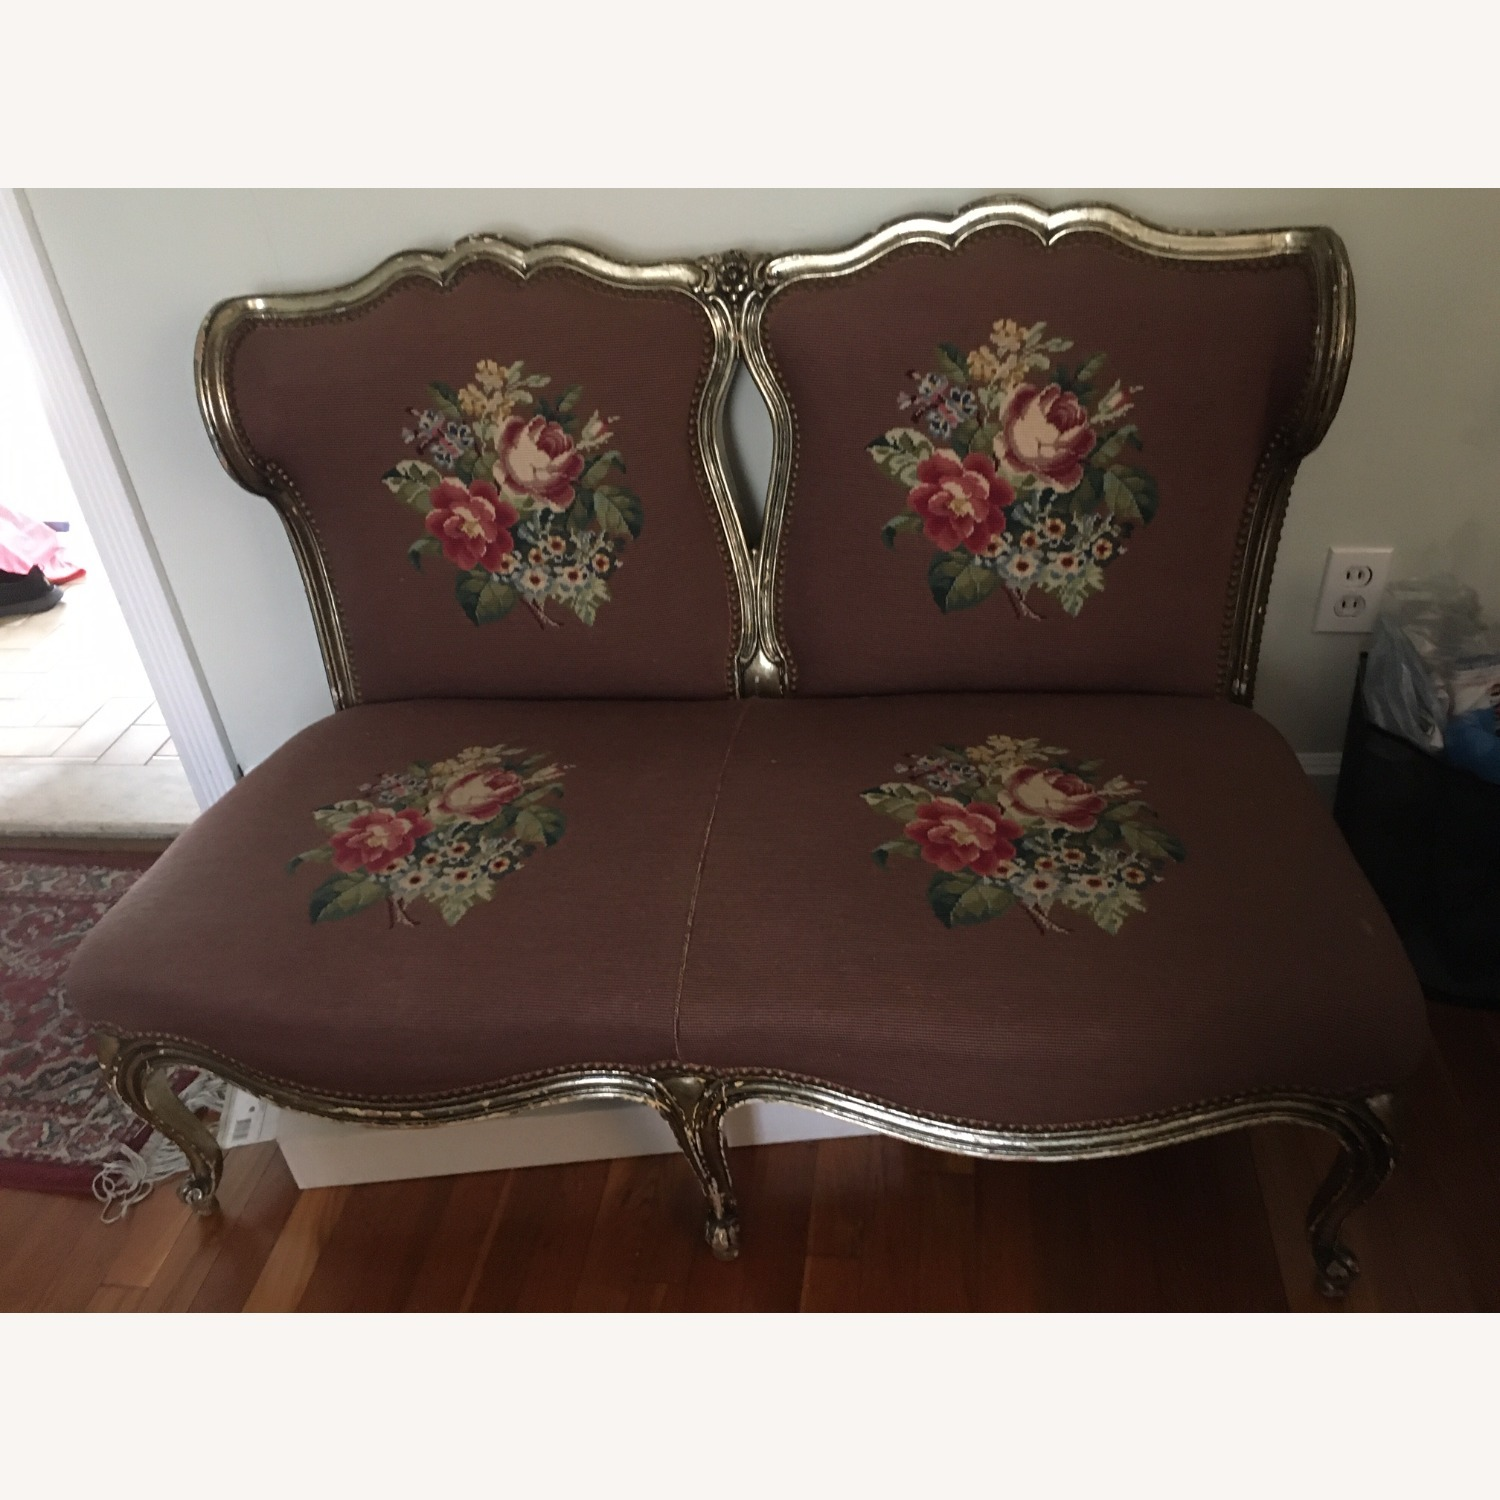 Taylor Made Needlepoint Floral Fabric Loveseat - image-1